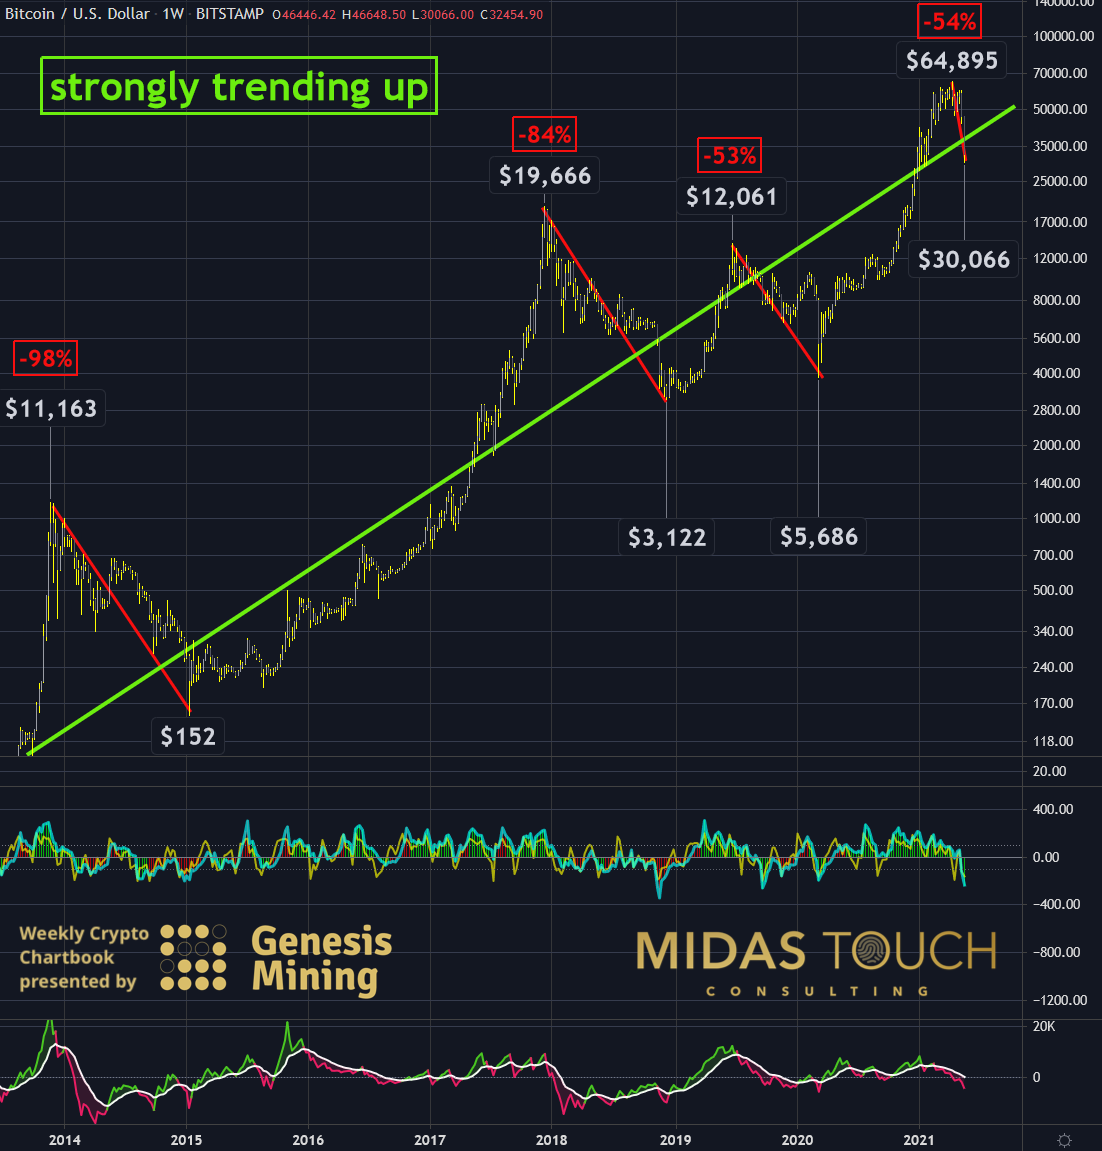 Bitcoin in US-Dollar, weekly chart as of May 24th, 2021.